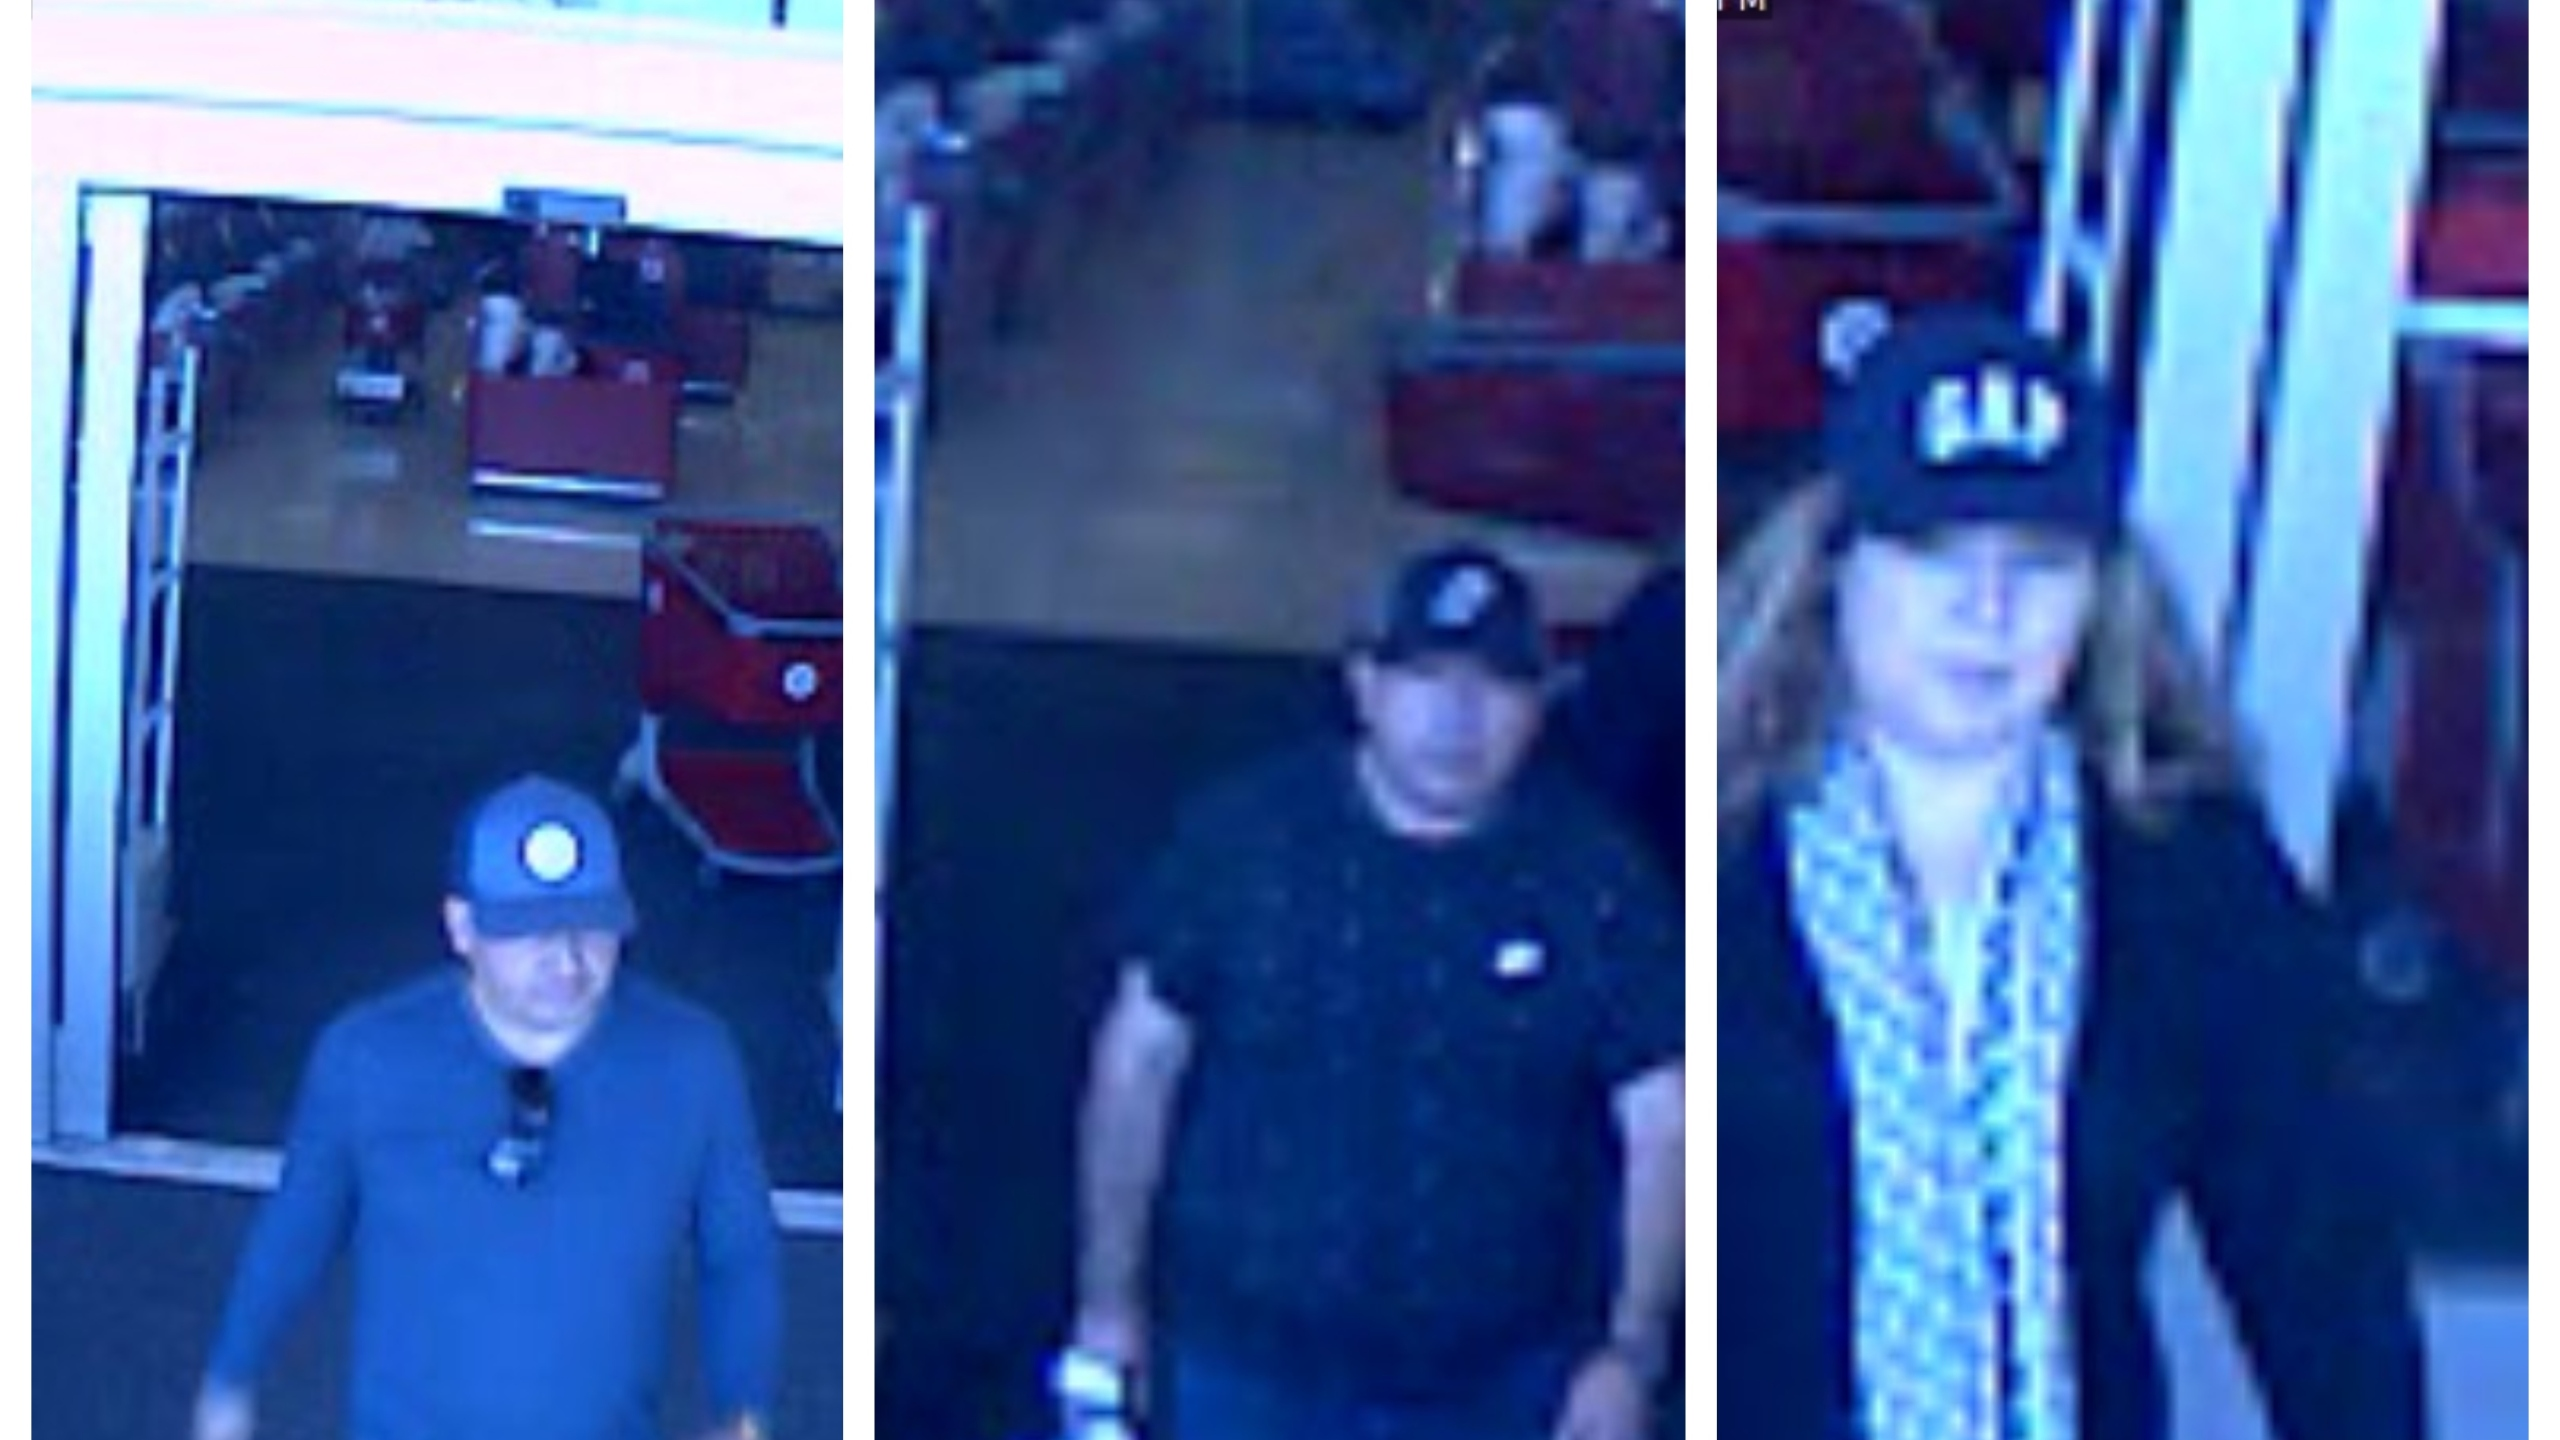 Seb. Co. Suspects_1554146479194.jpg-60106293-60106293.jpg